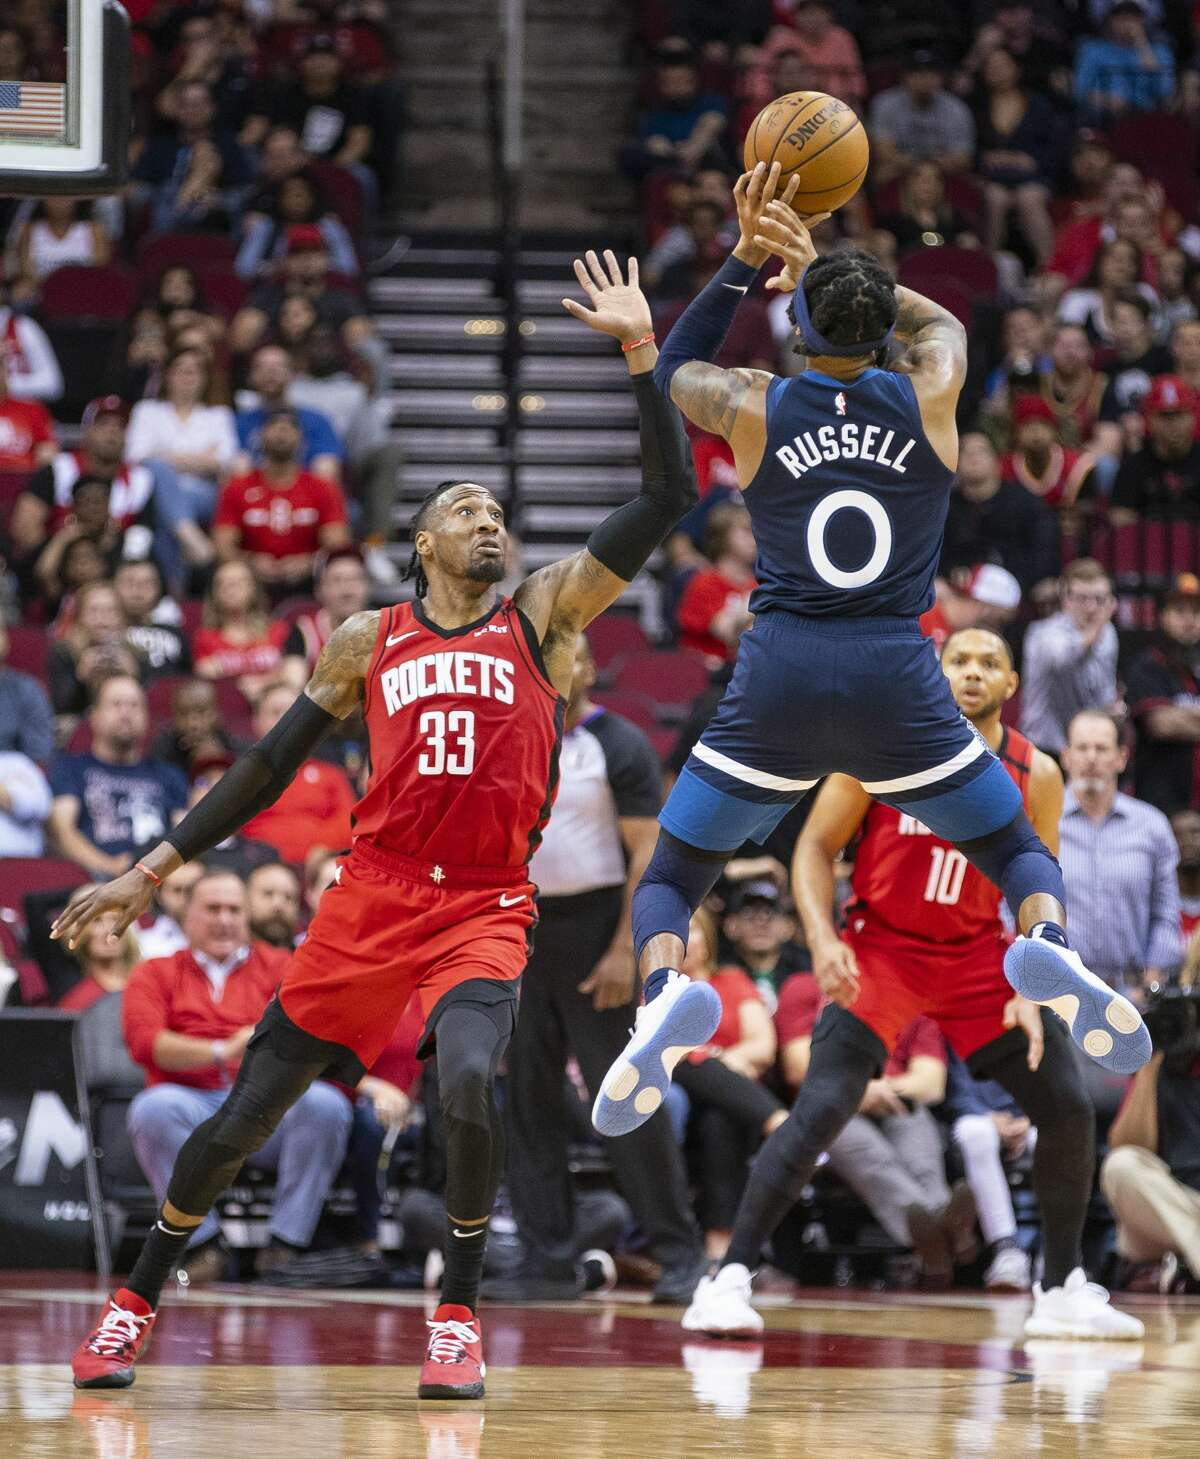 Minnesota Timberwolves guard D'Angelo Russell (0) shoots over Houston Rockets forward Robert Covington (33) during the second half of an NBA game, Tuesday, March 10, 2020, at Toyota Center in Houston.